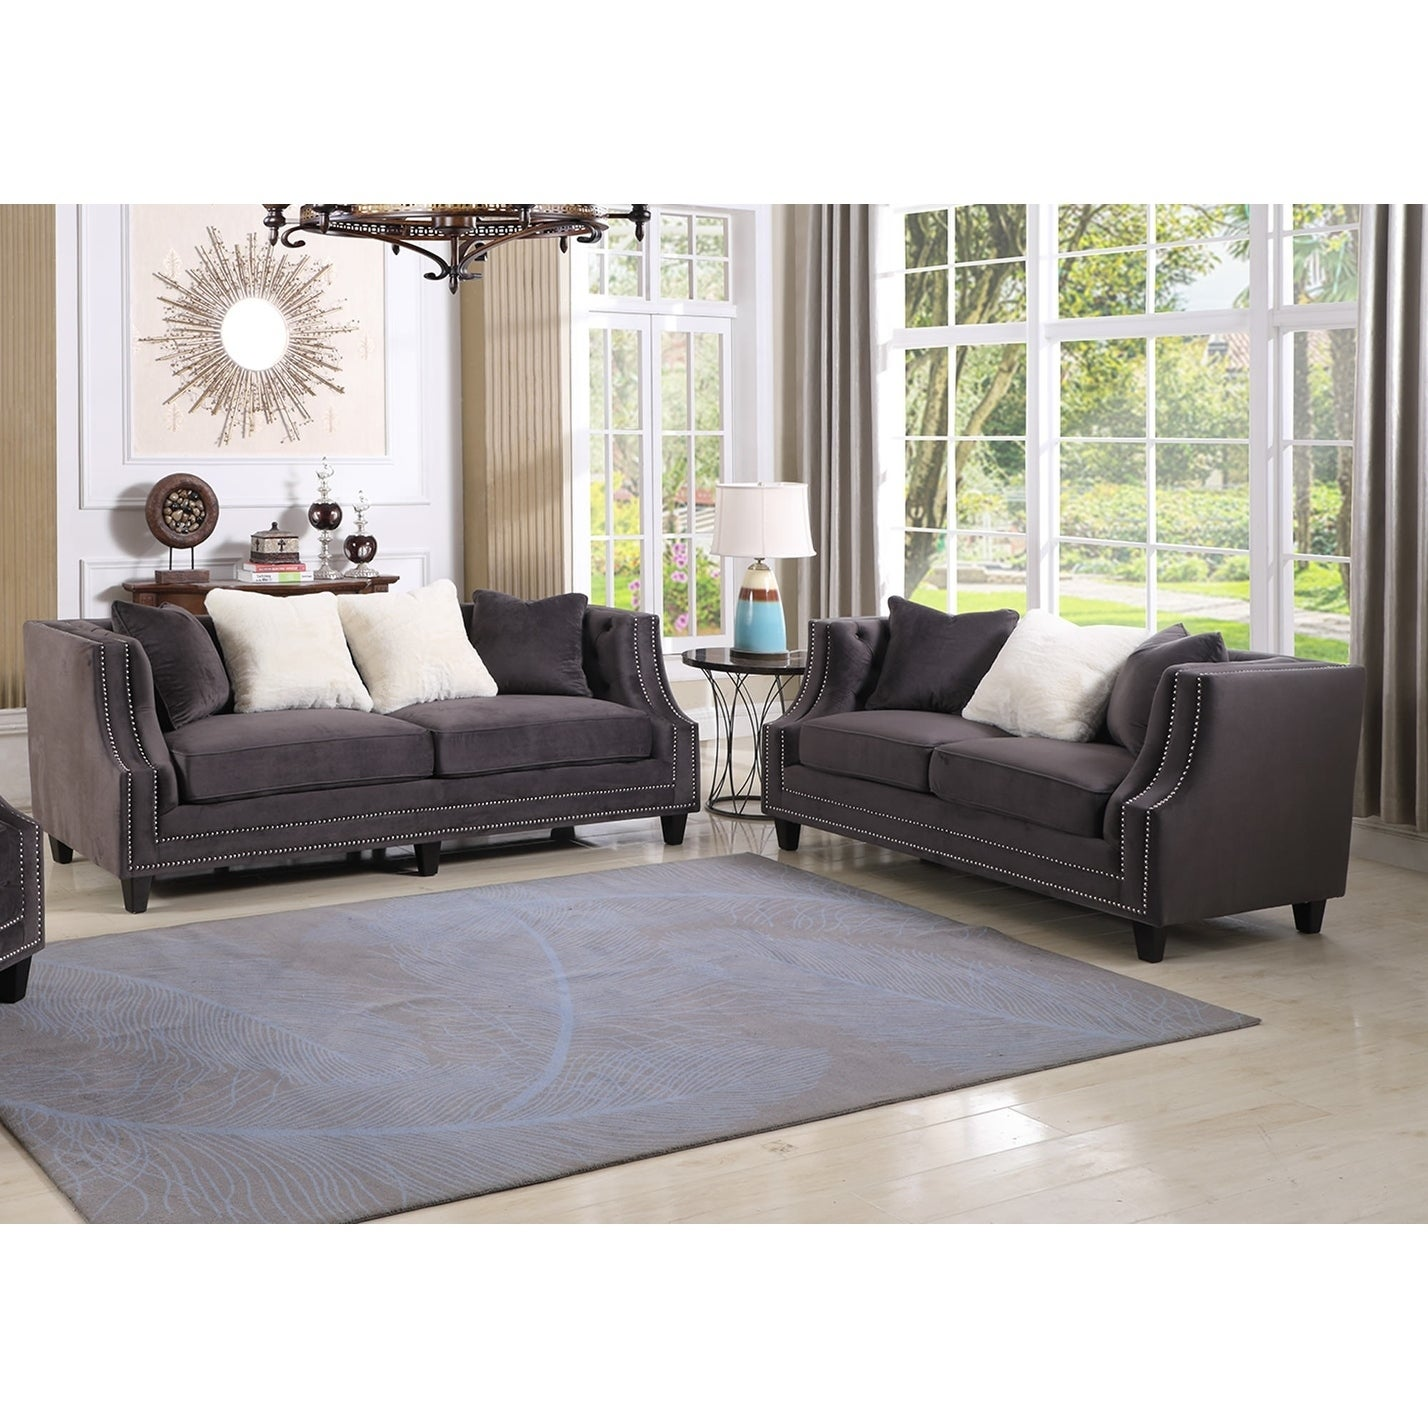 loveseats size small sofas large loveseat sofa of best and living grey couch room